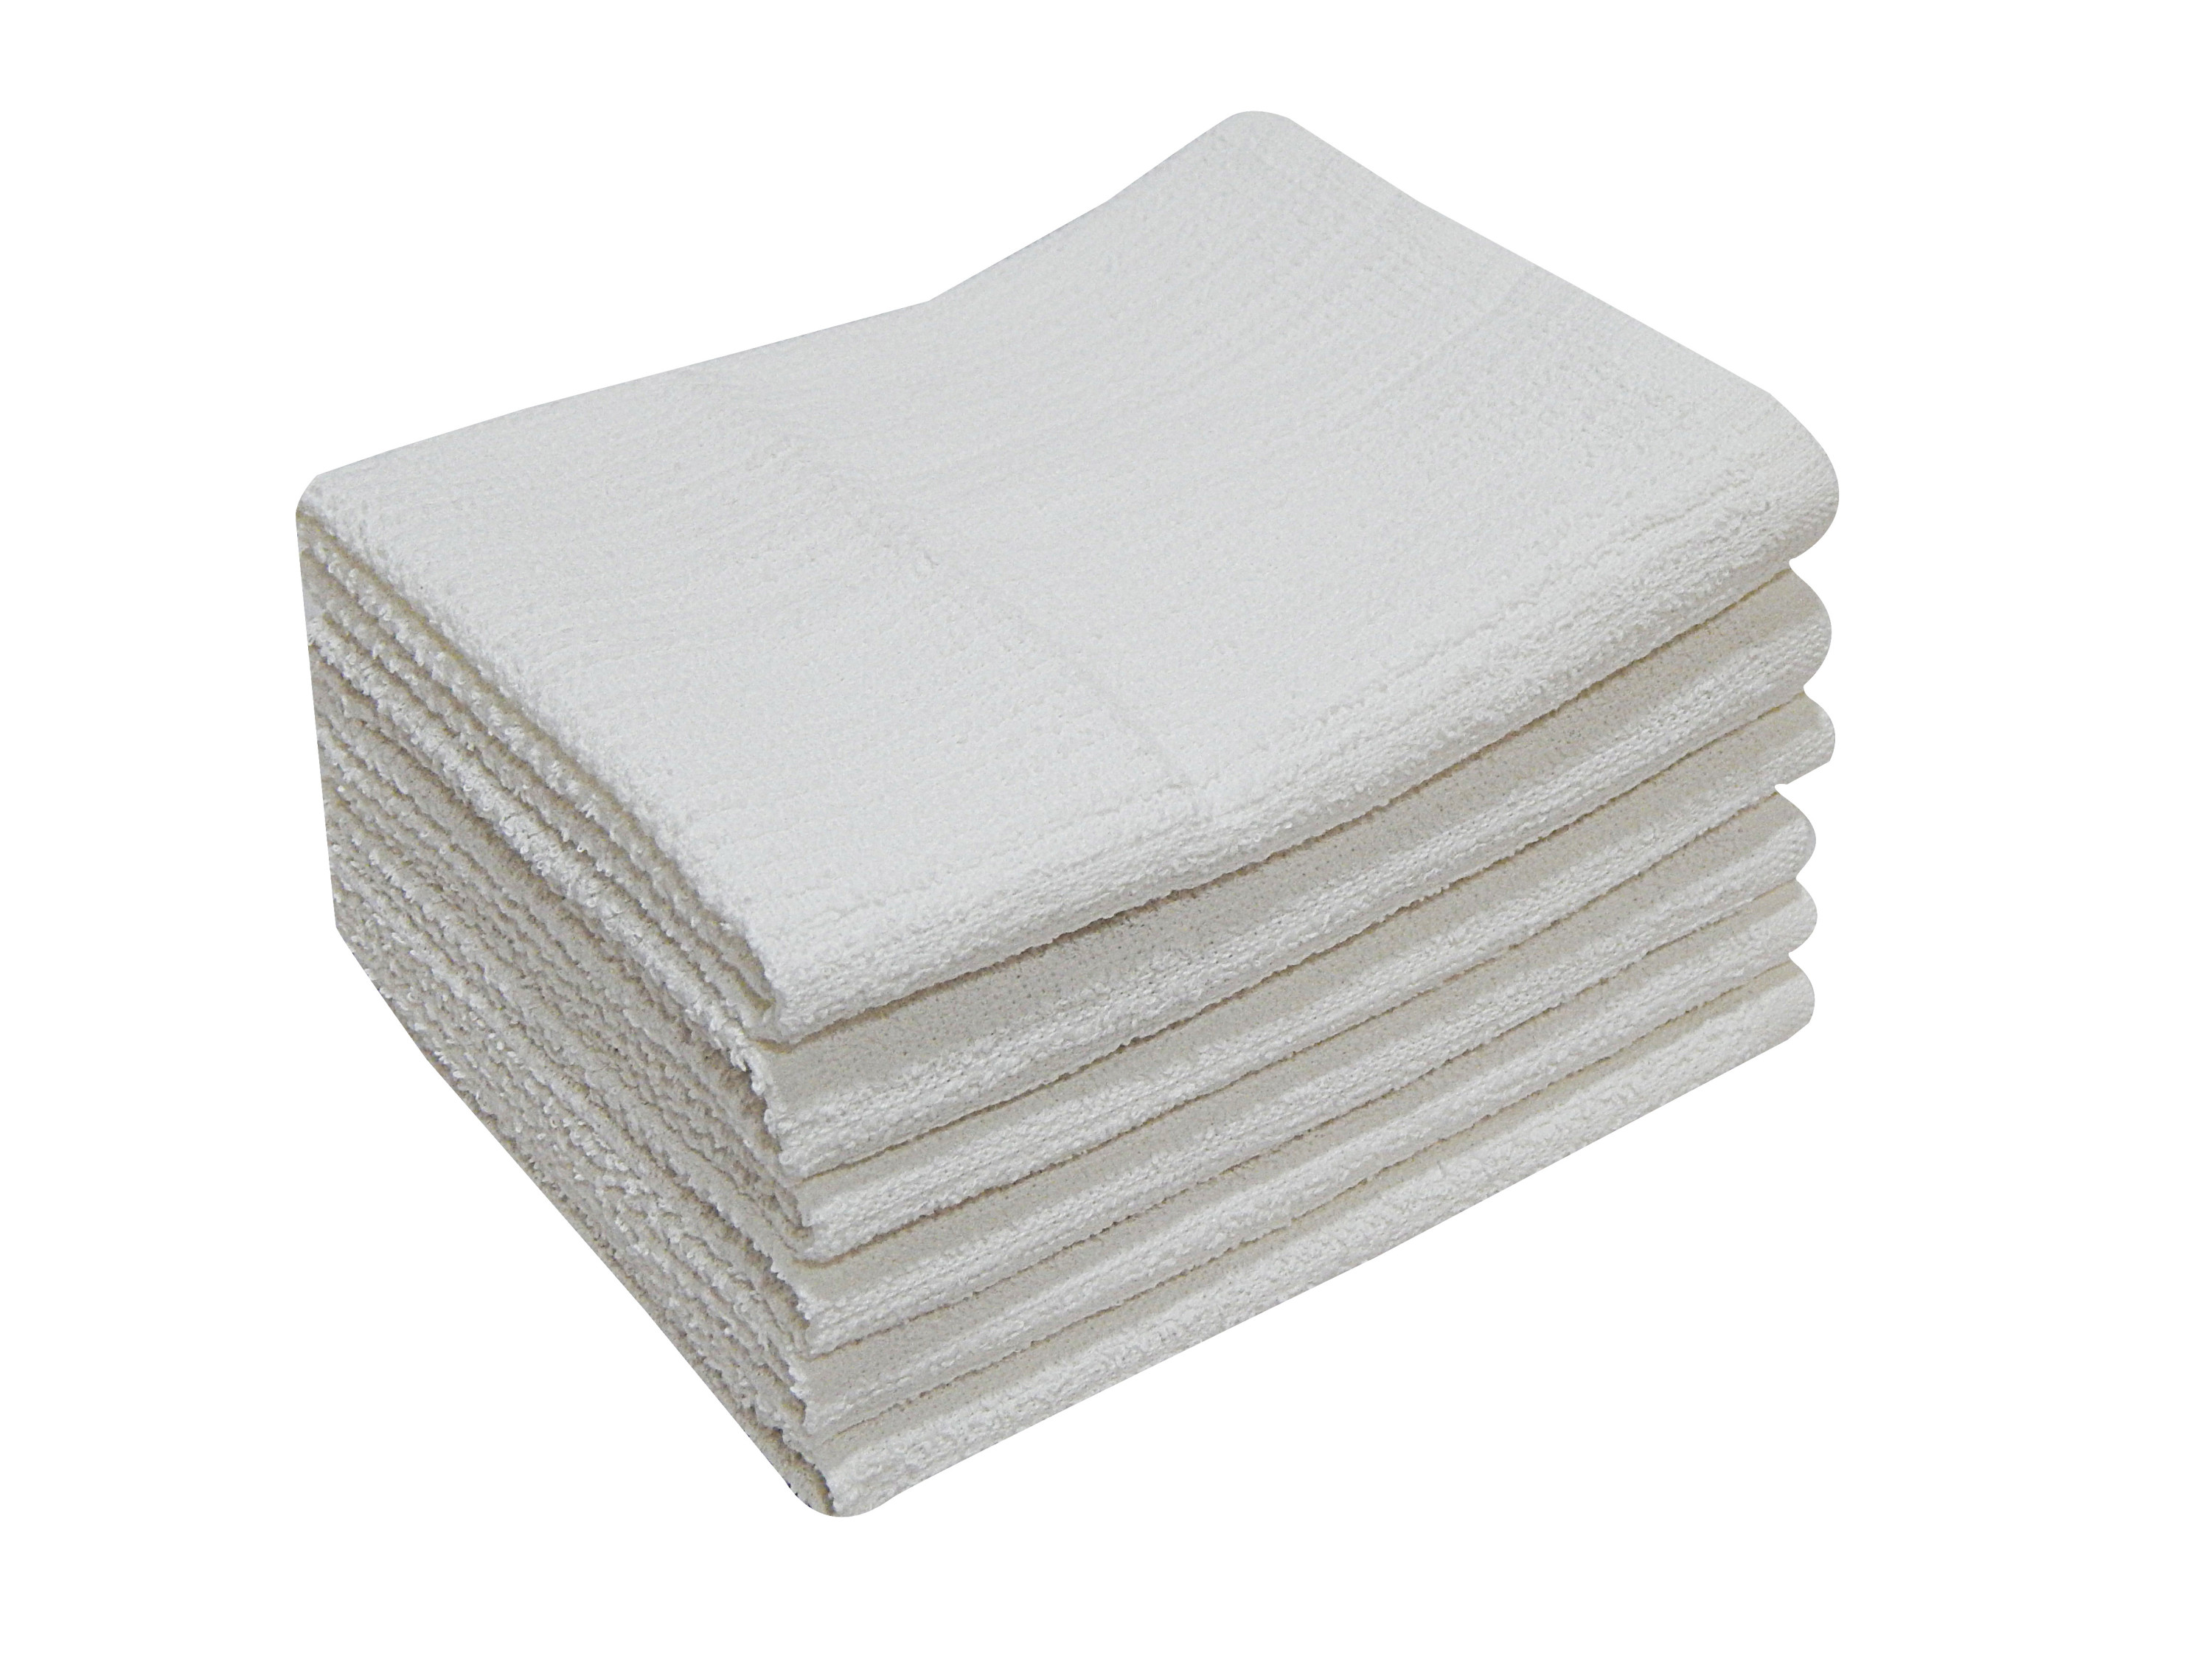 Mainstays 6-Piece Kitchen Towel Set, White - Walmart.com